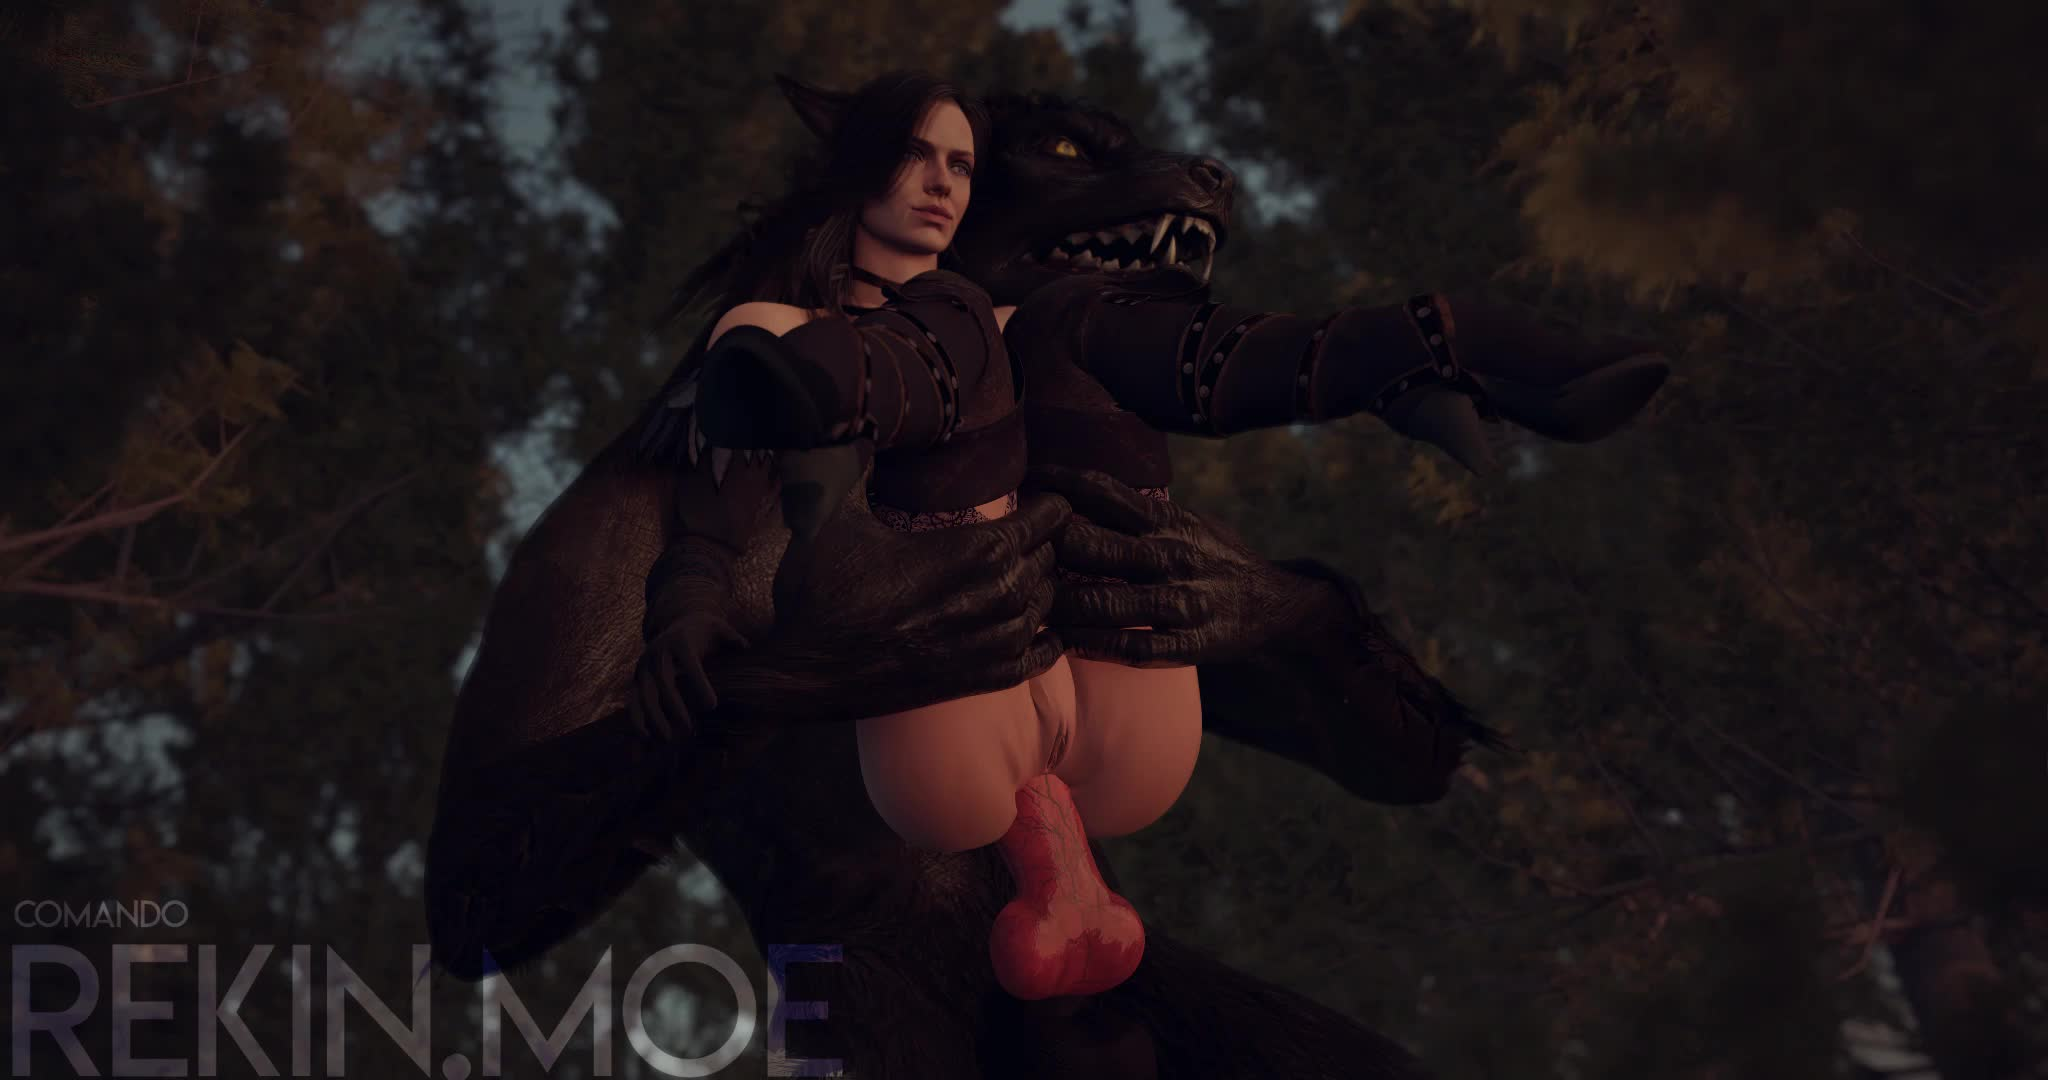 Yenner Getting Her Ass Knotted By A Werewolf